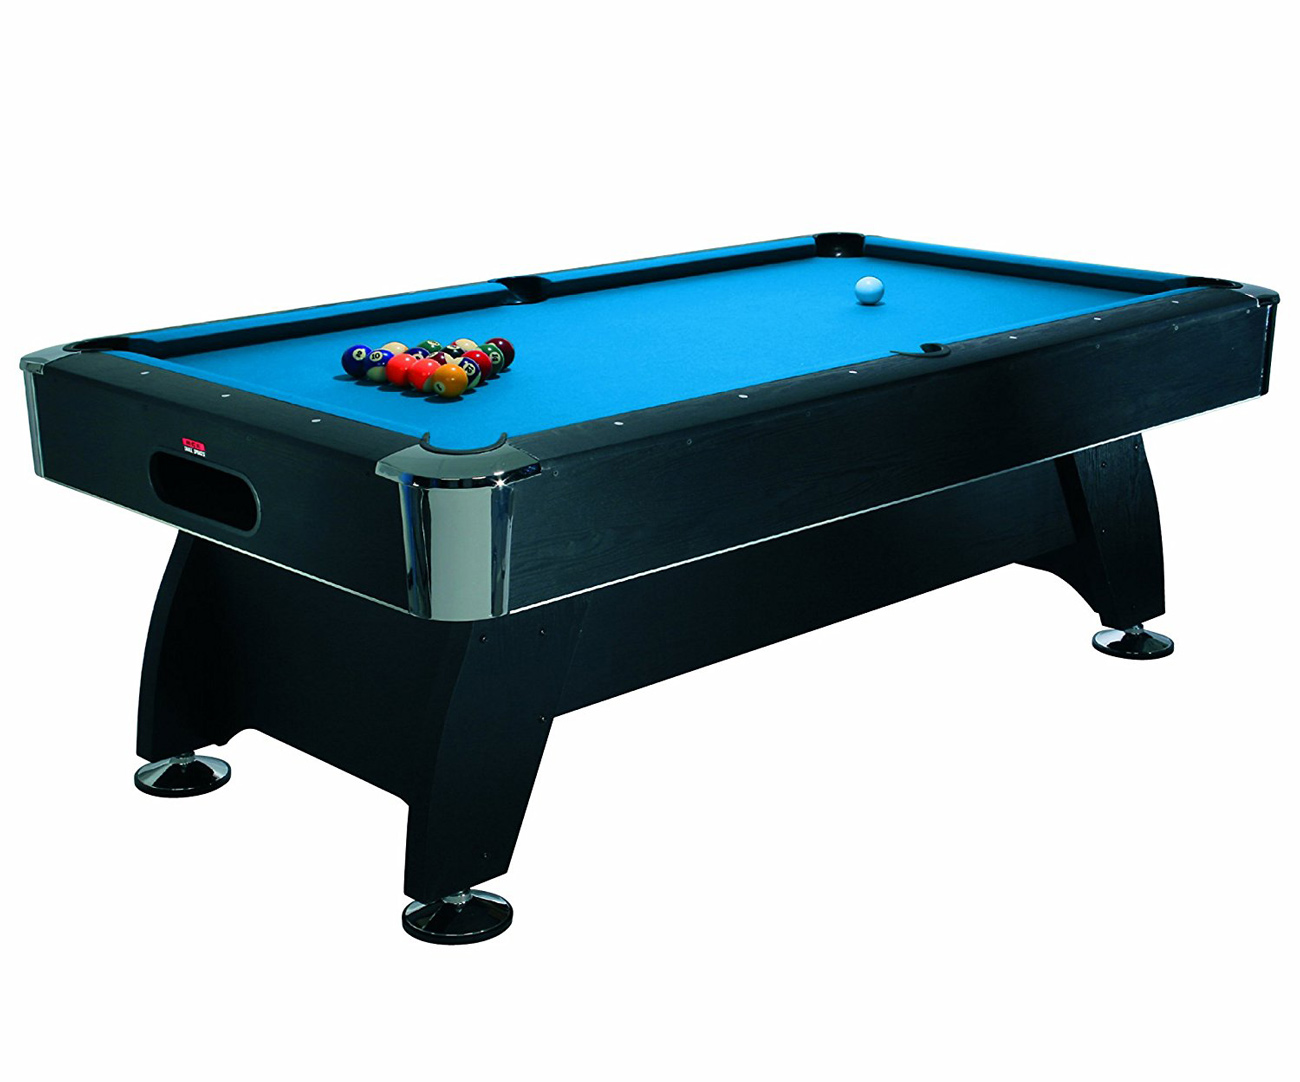 Black cat pool table 7ft hpt1 7 liberty games - Pool table images ...